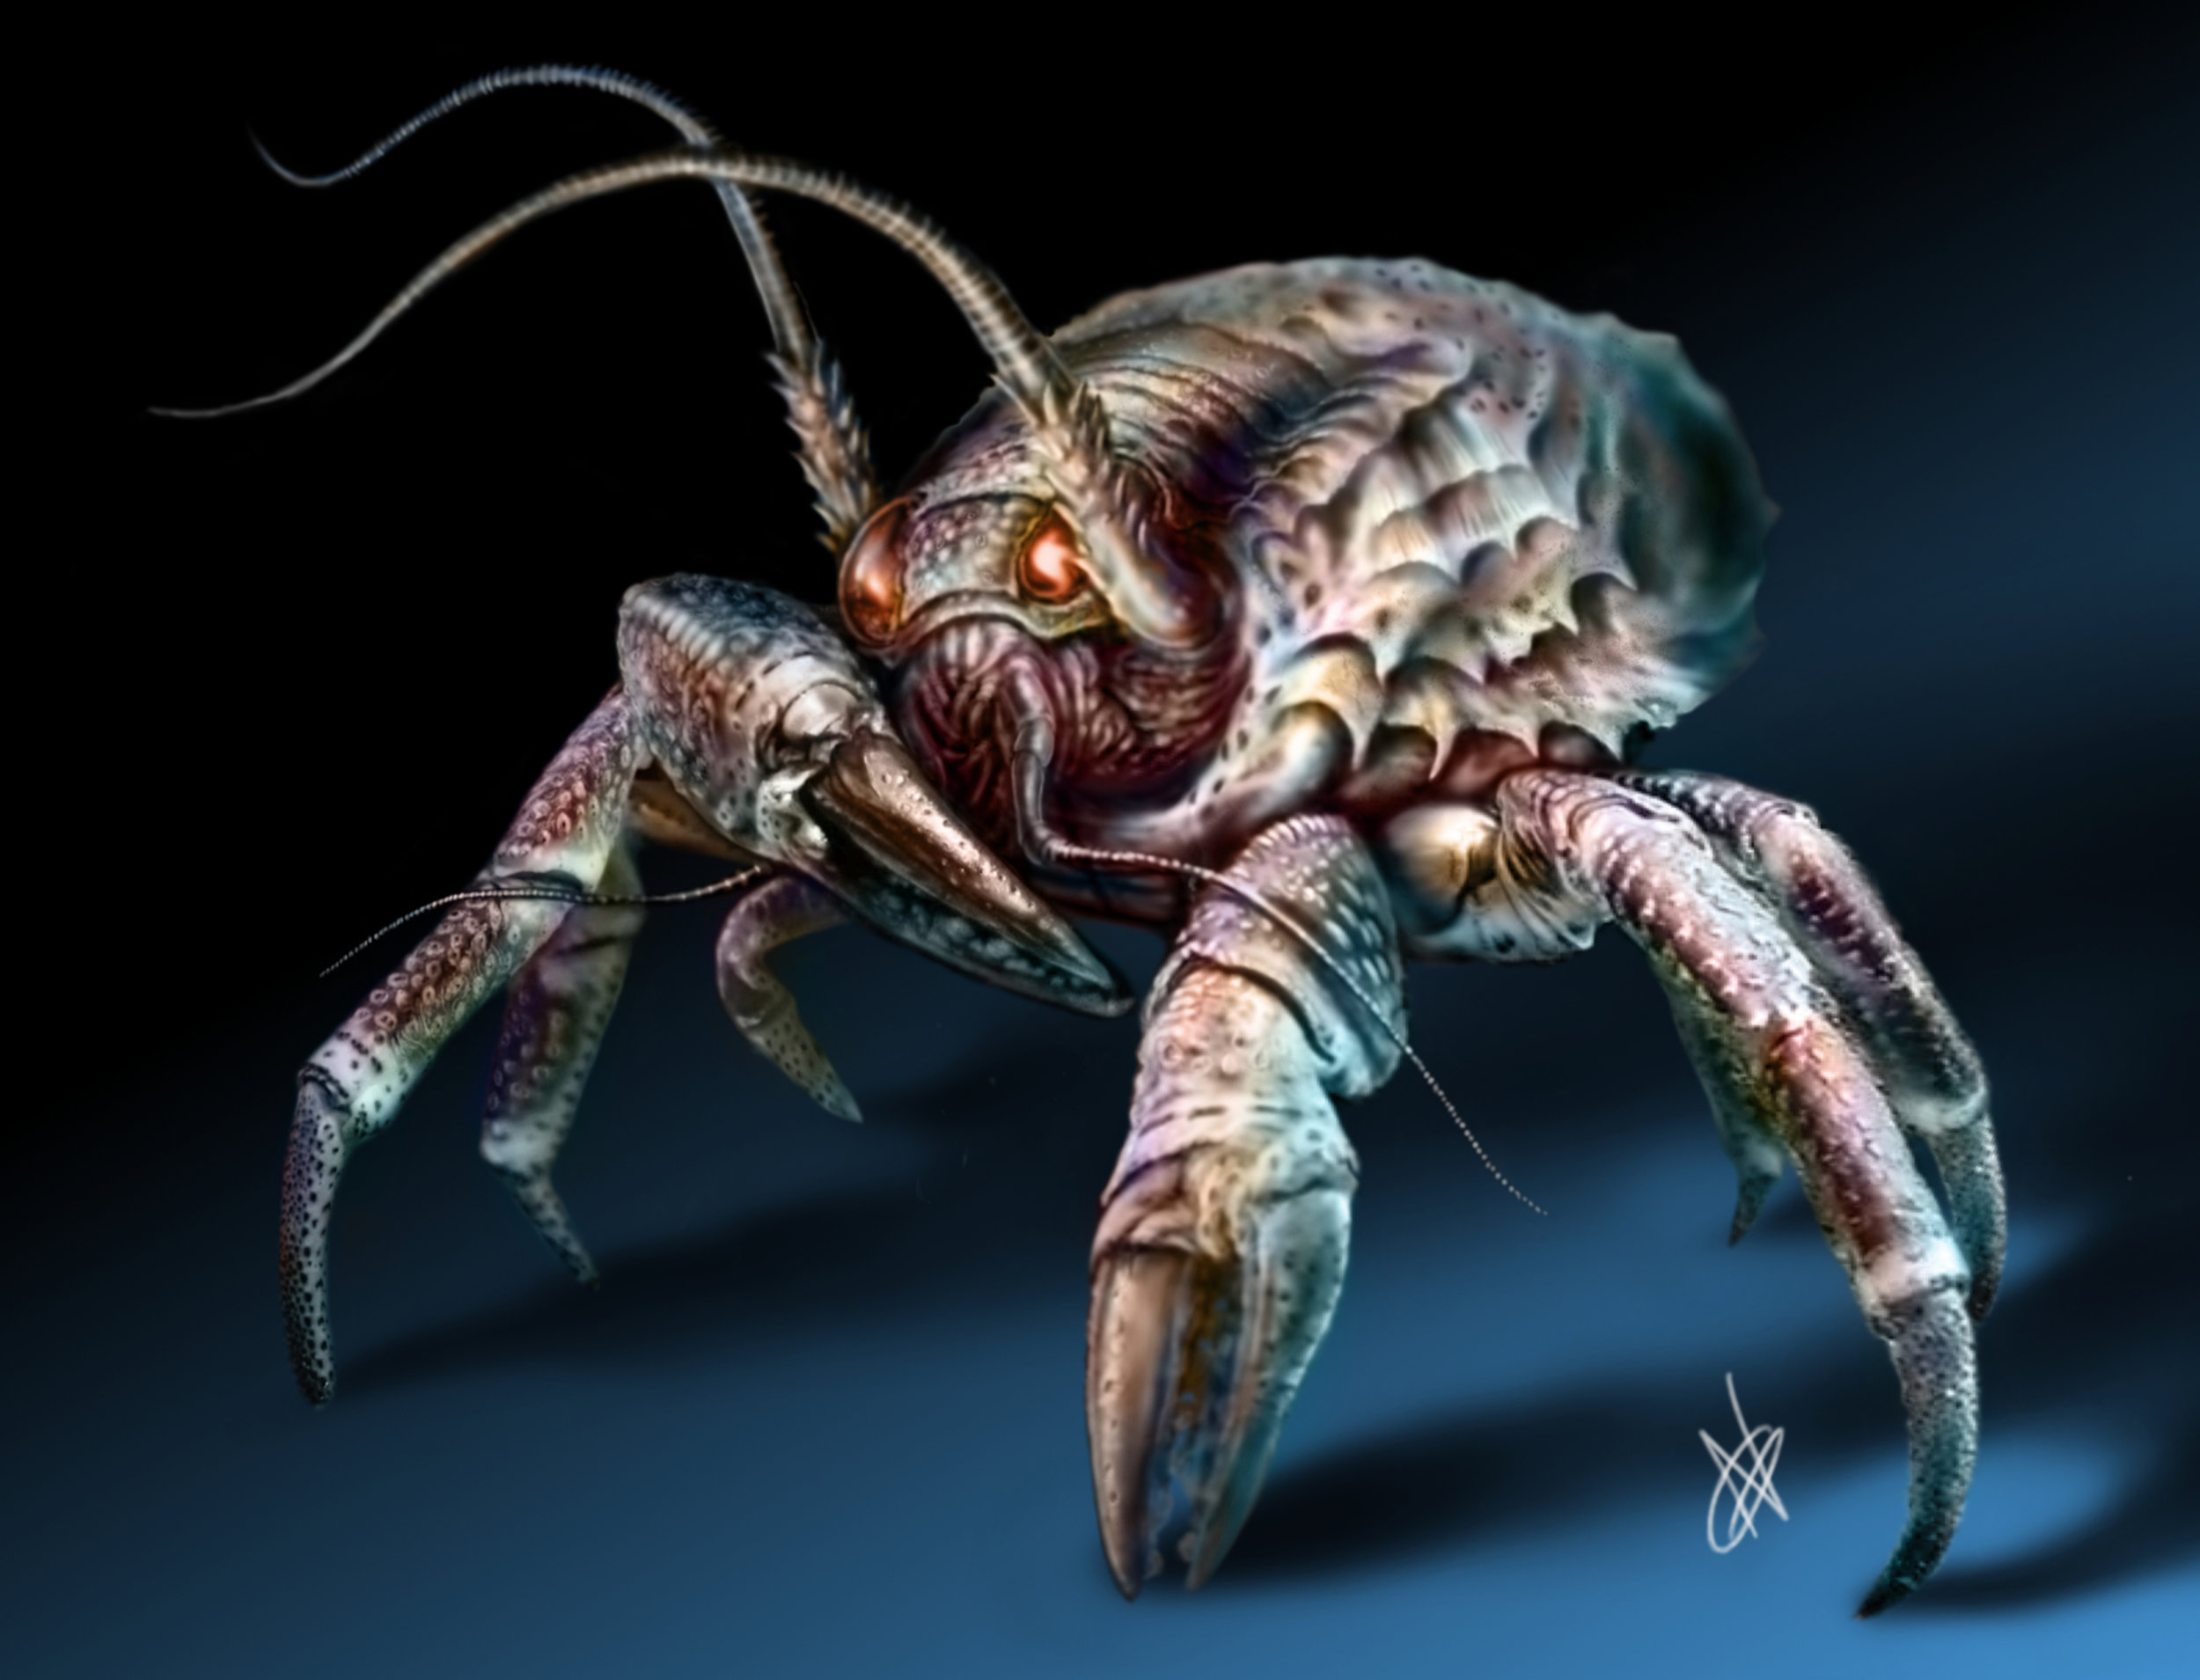 A crab-like critter, inspired by all the things that are so creepy they're cute. Just me?